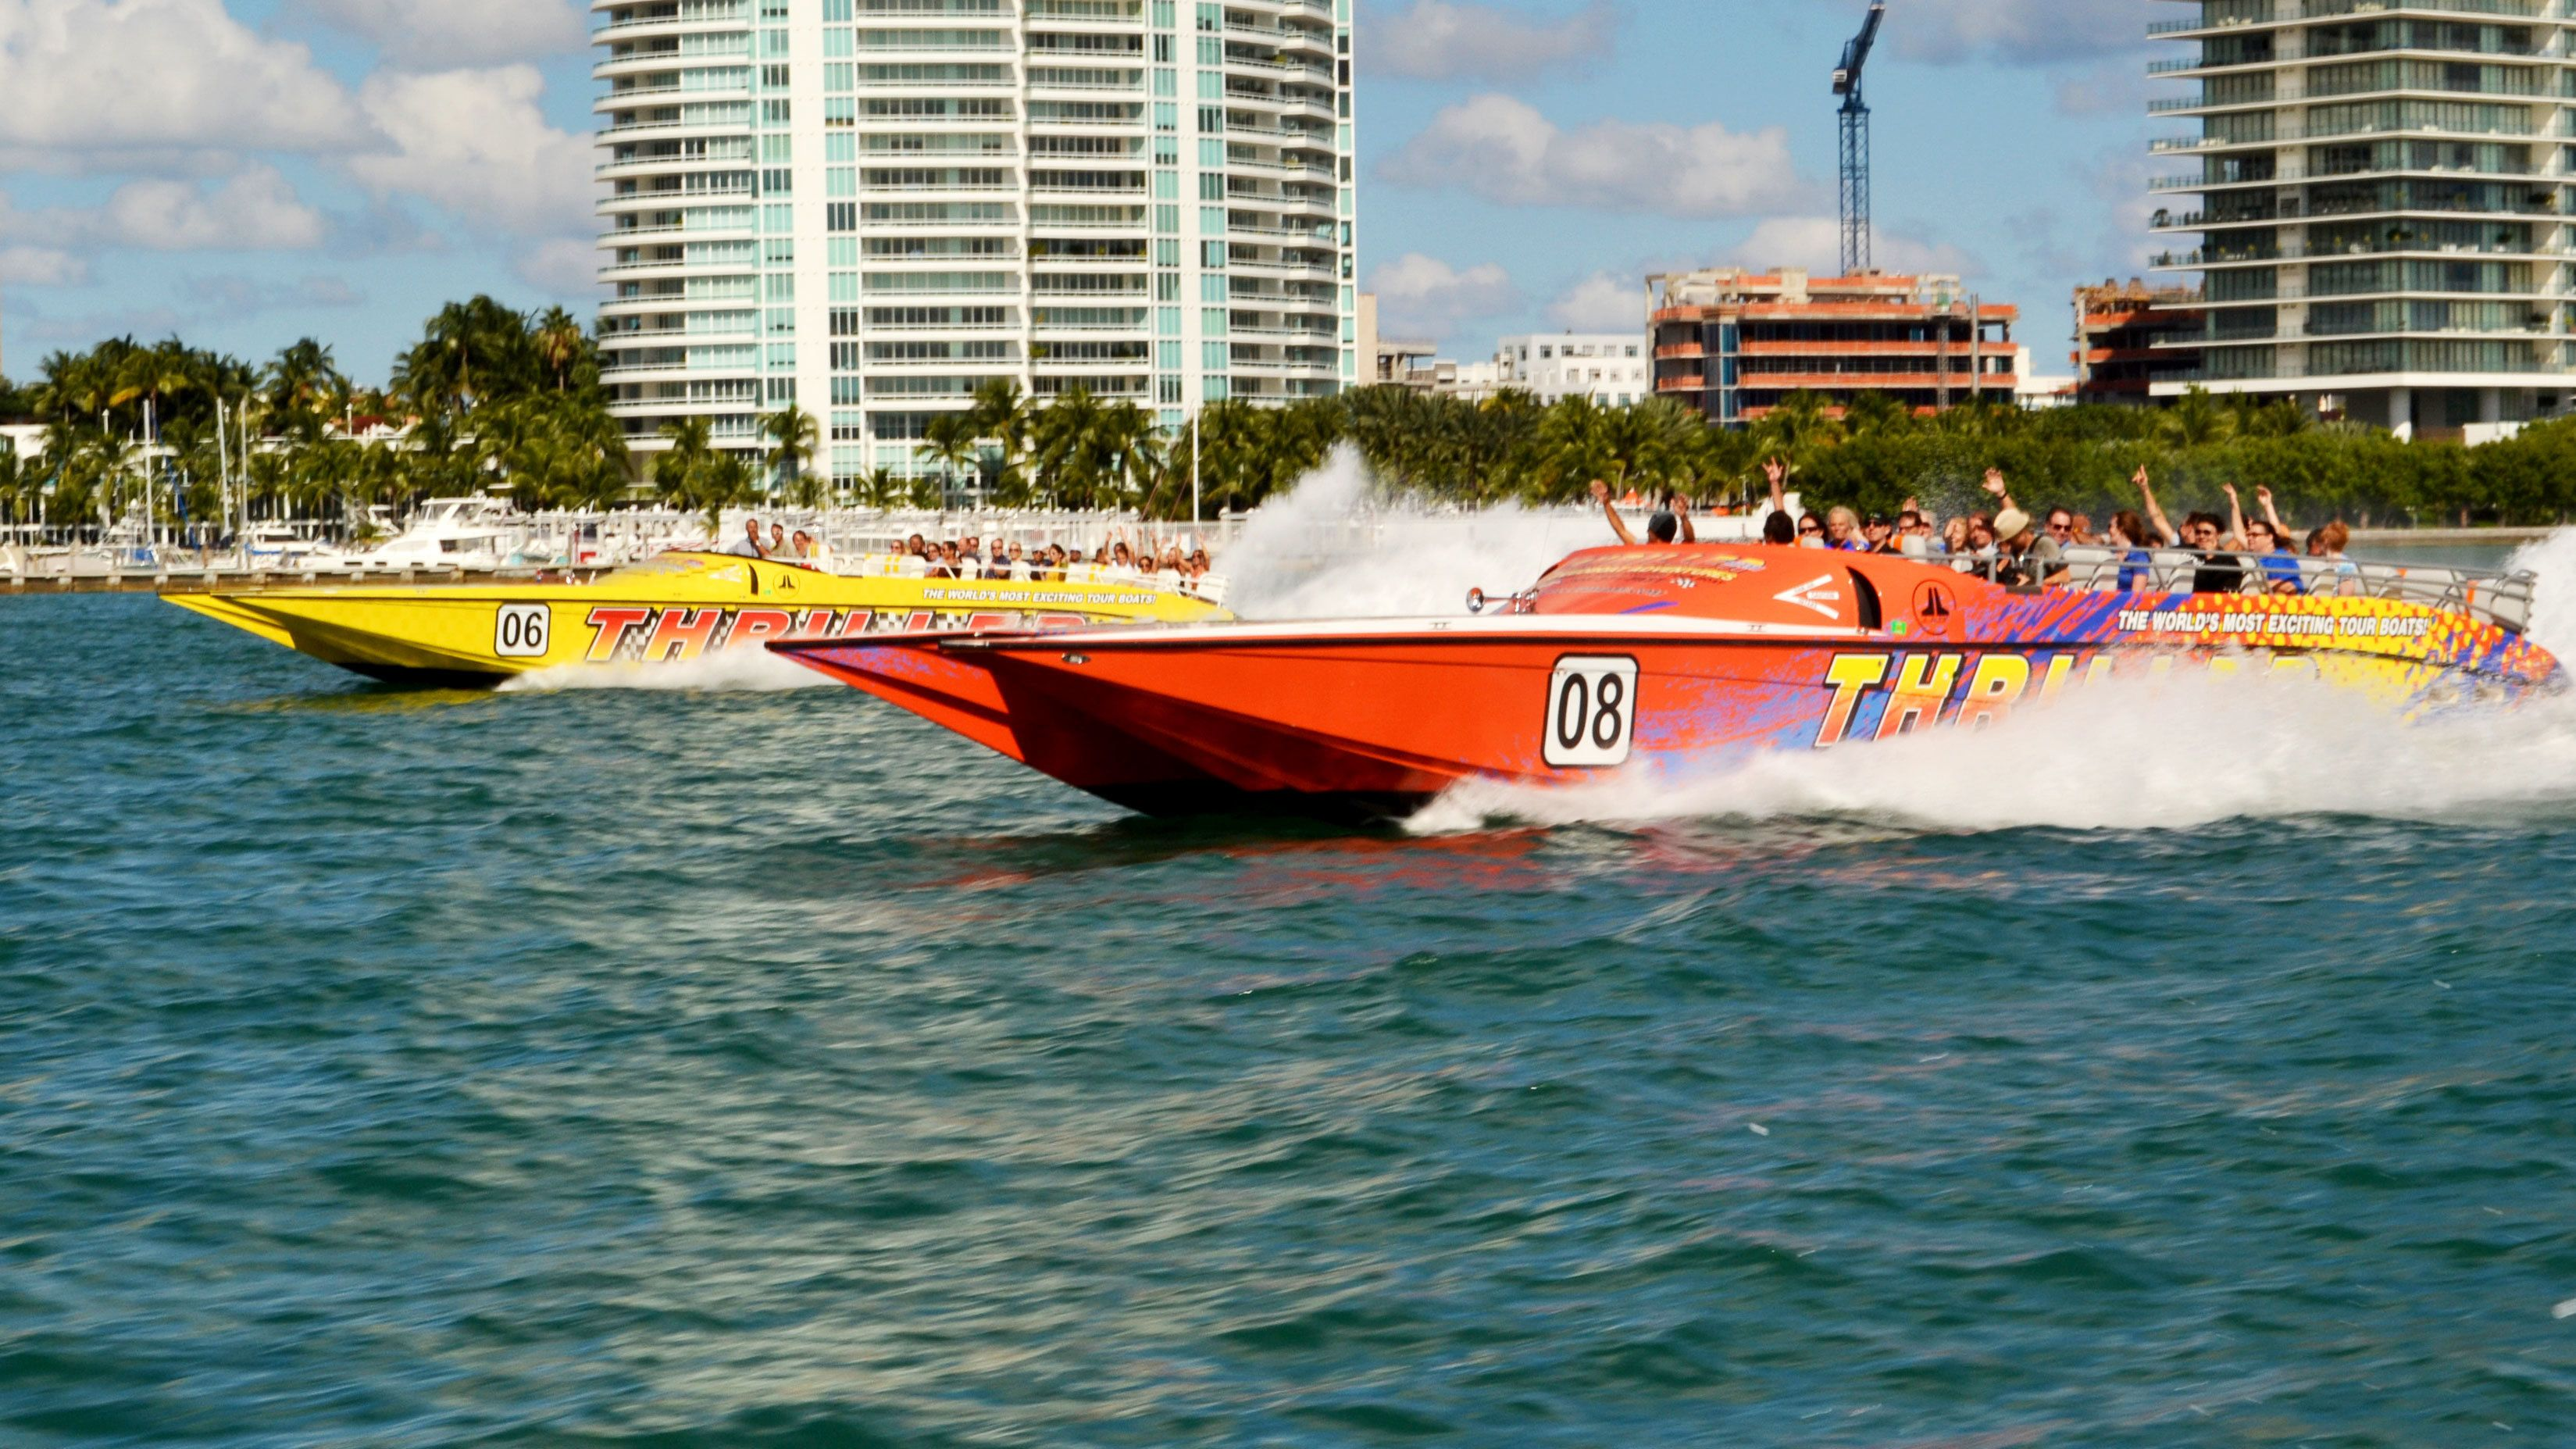 Two speedboats full of people roar through the ocean off Miami